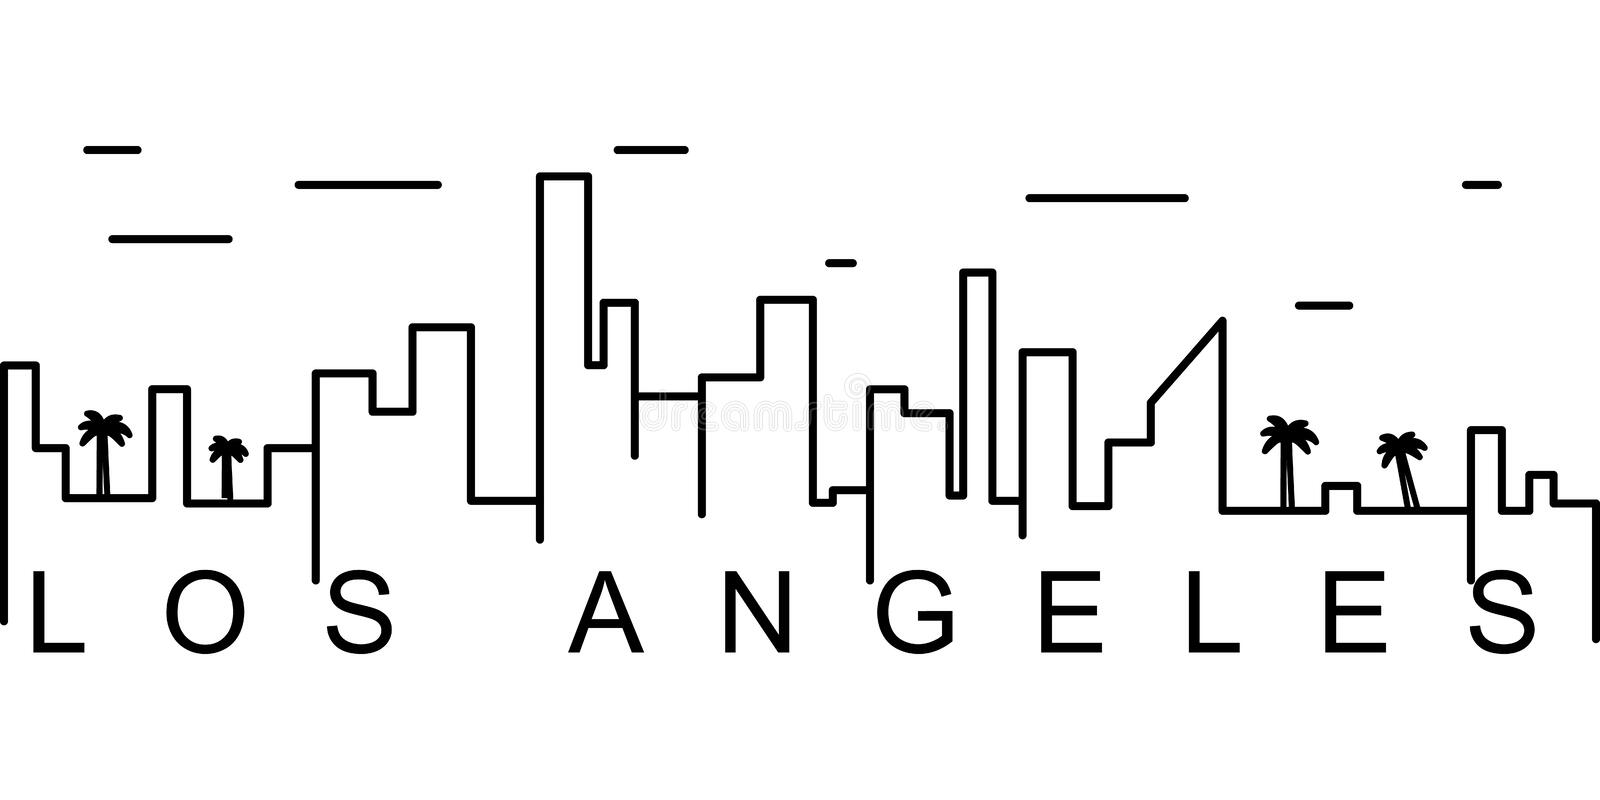 Los Angeles outline icon. Can be used for web, logo, mobile app, UI, UX stock illustration